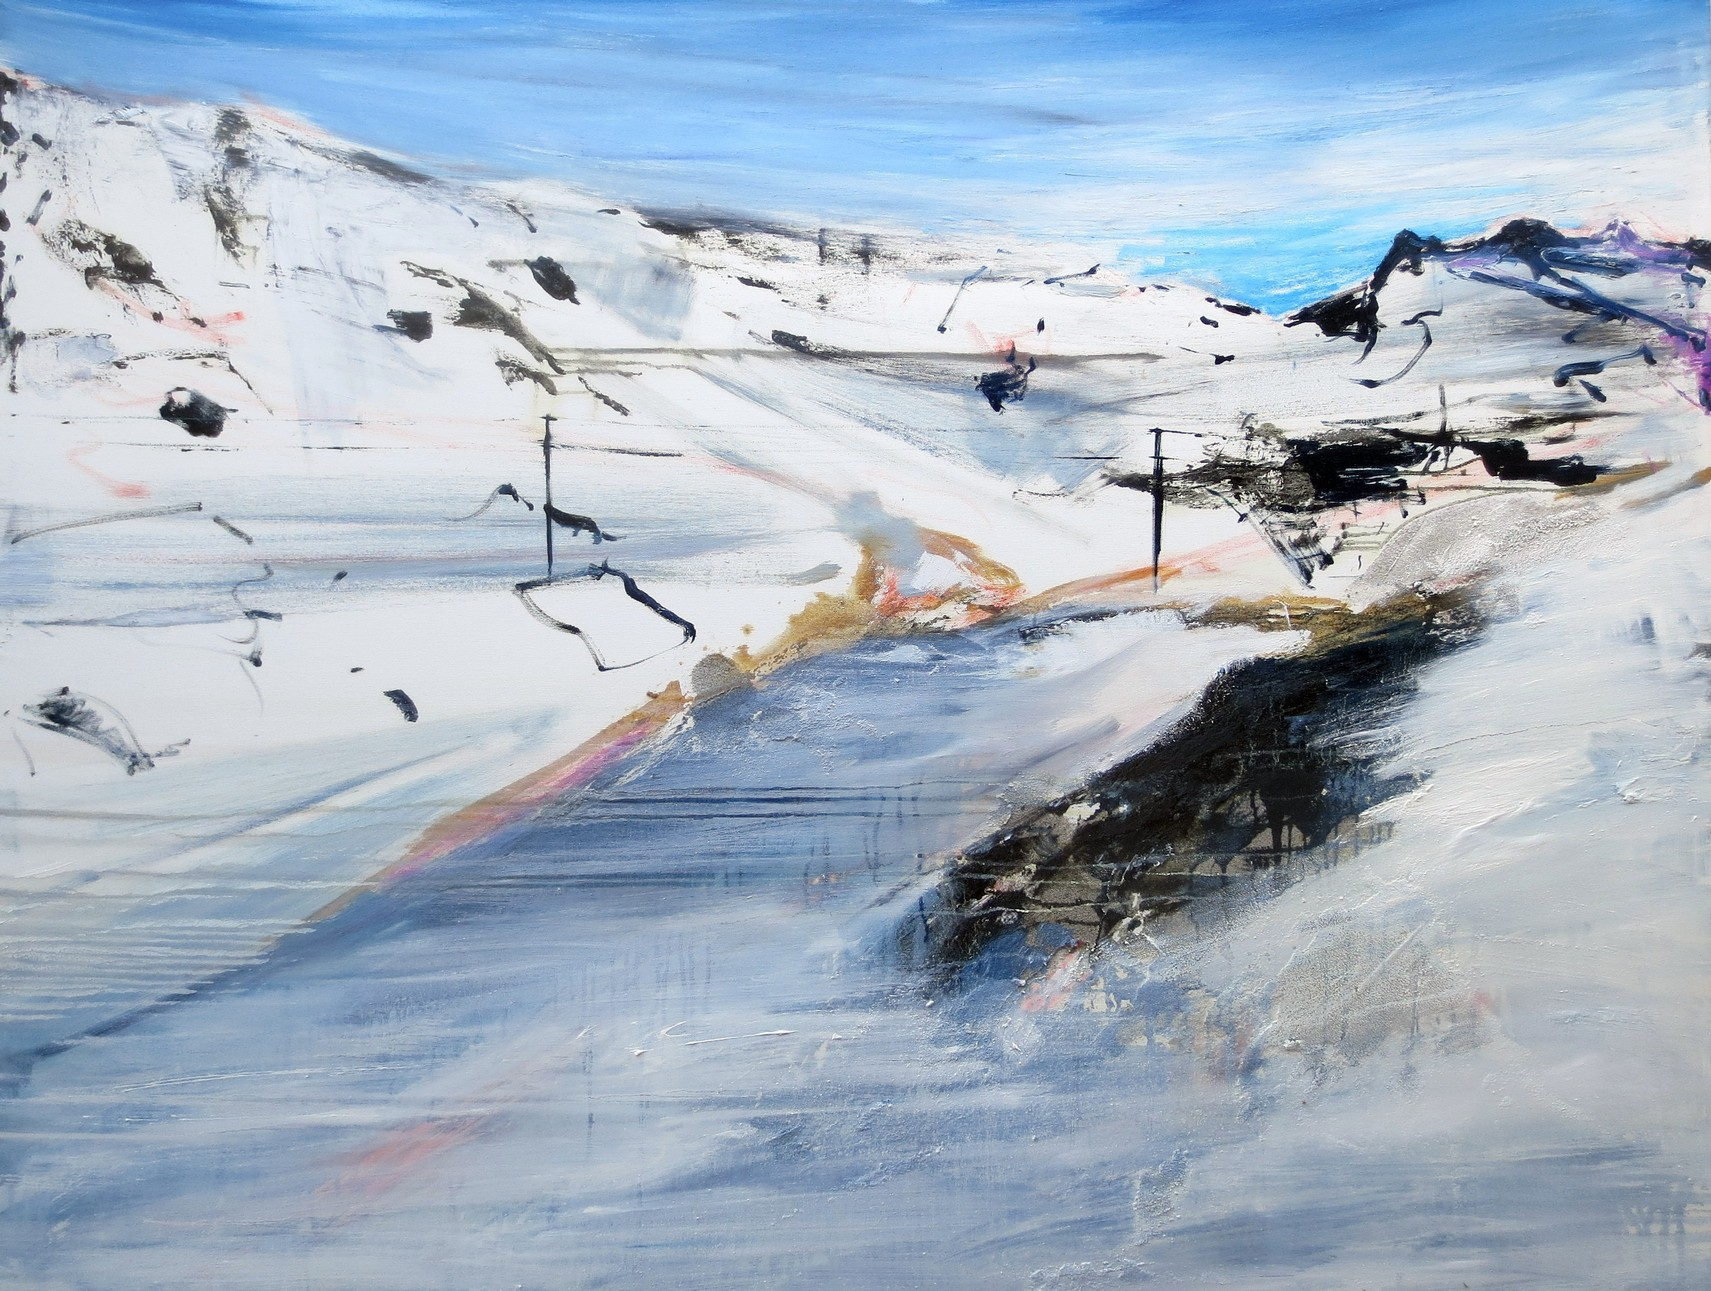 Francesco Zavatta 2018 Alpi innevate 120x150cm oil on canvas